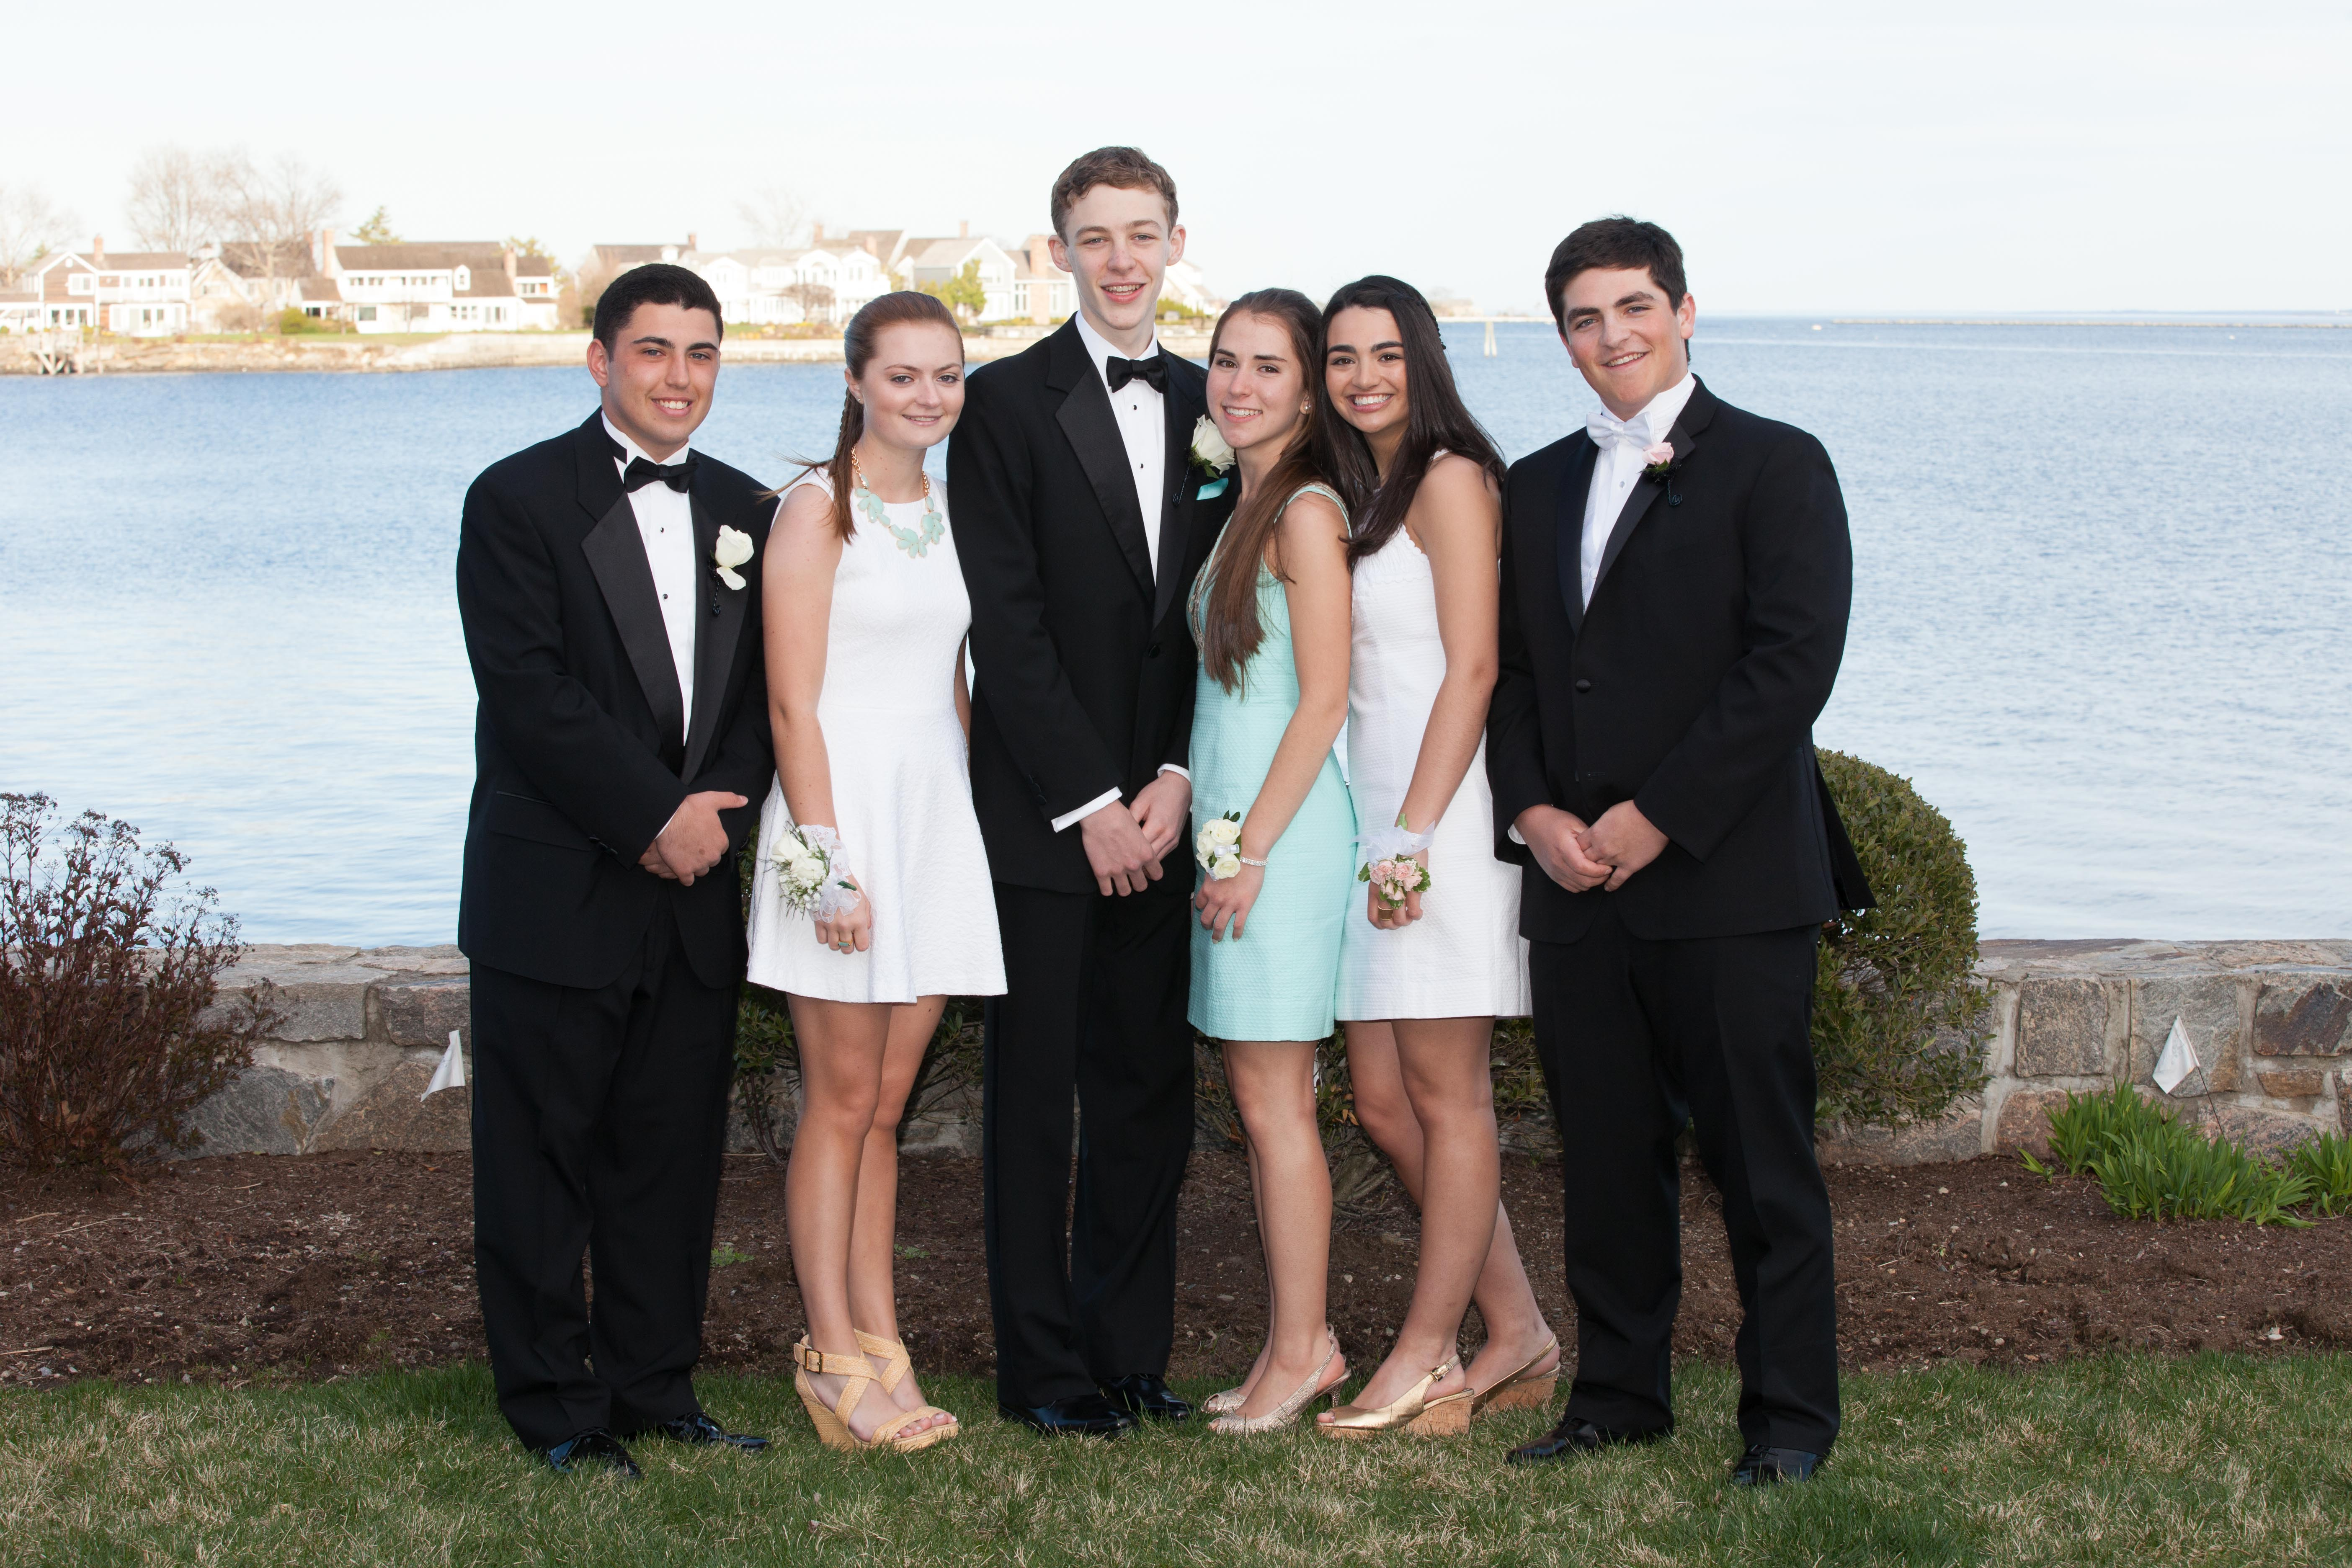 Group Prom Photo of Greenwich High School